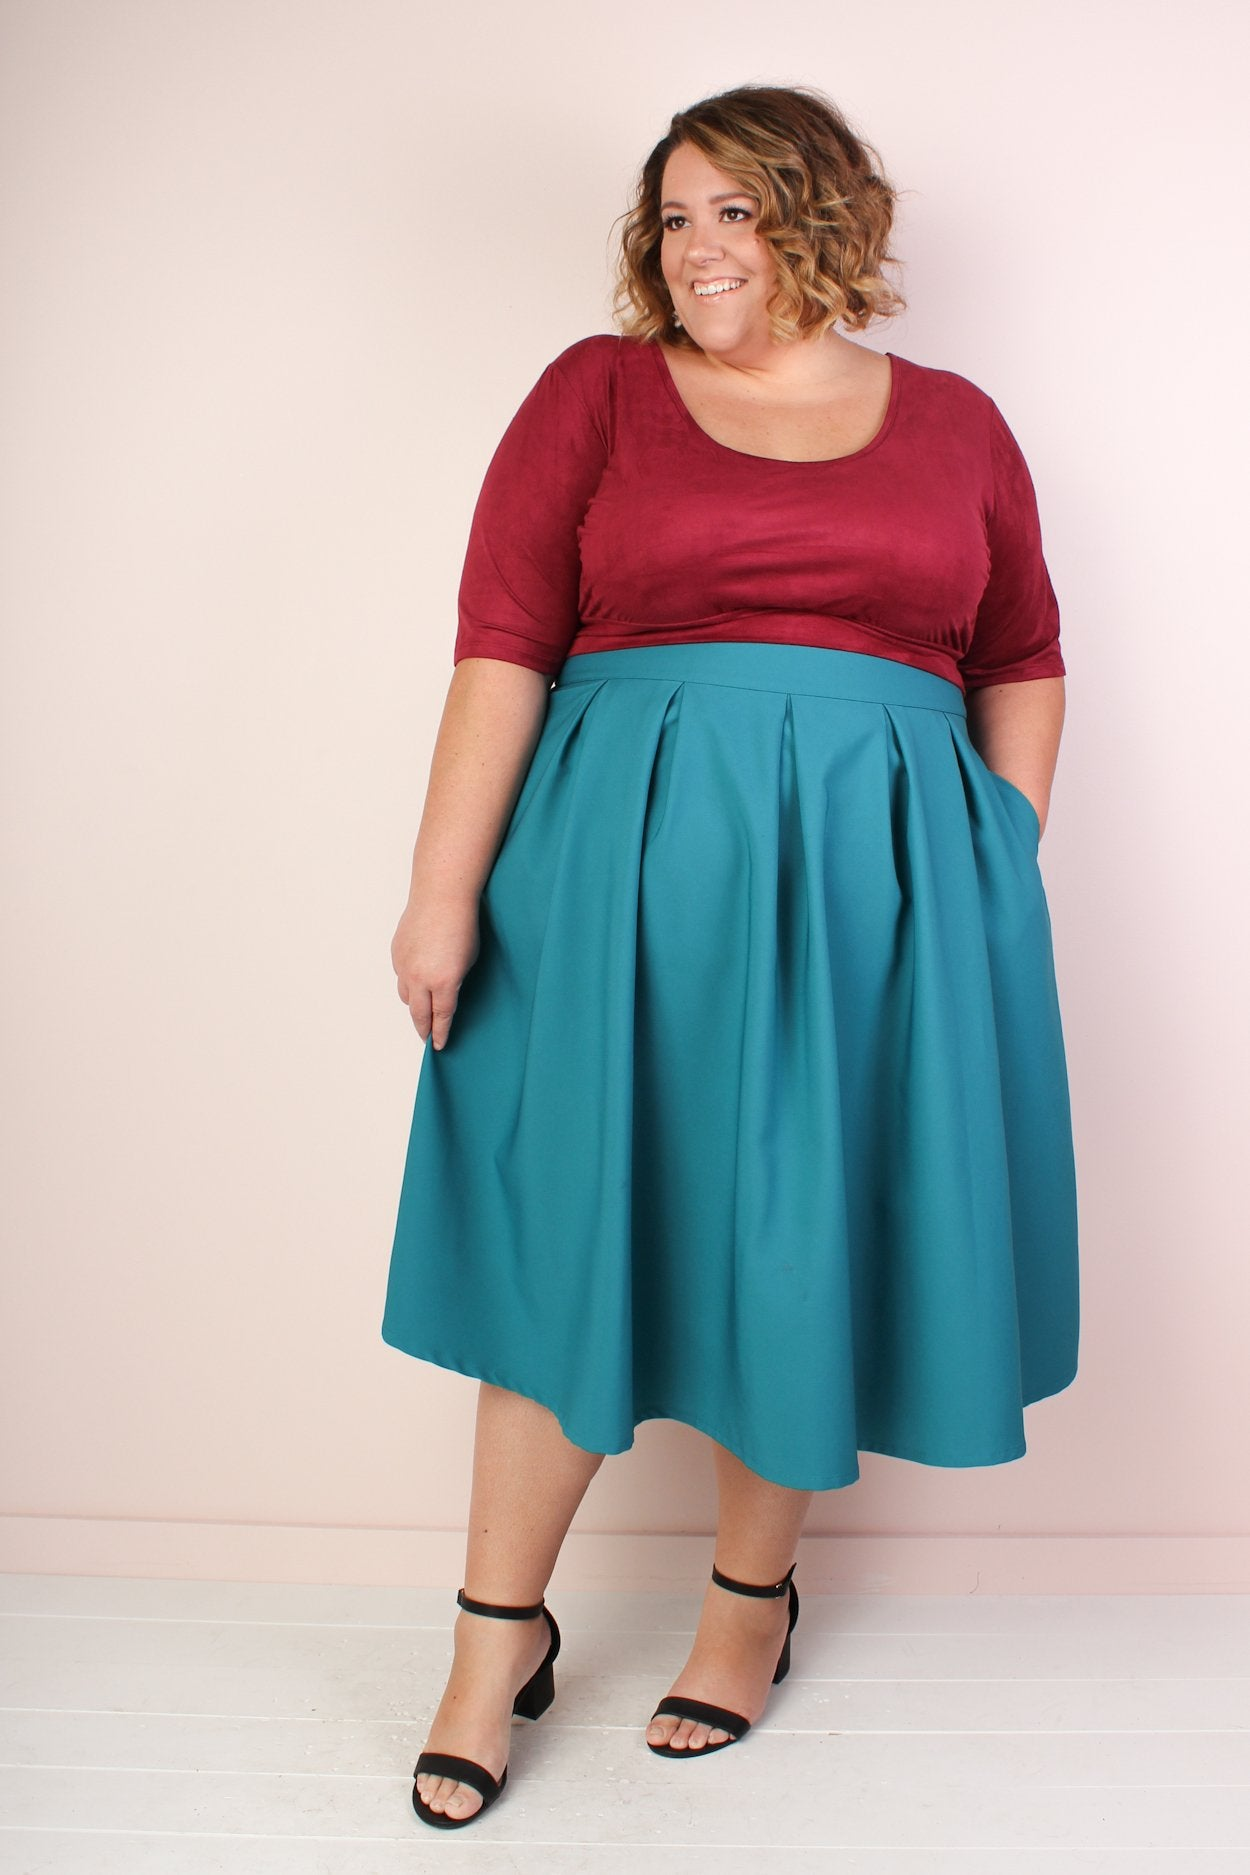 The Kate Midington - Dark Teal